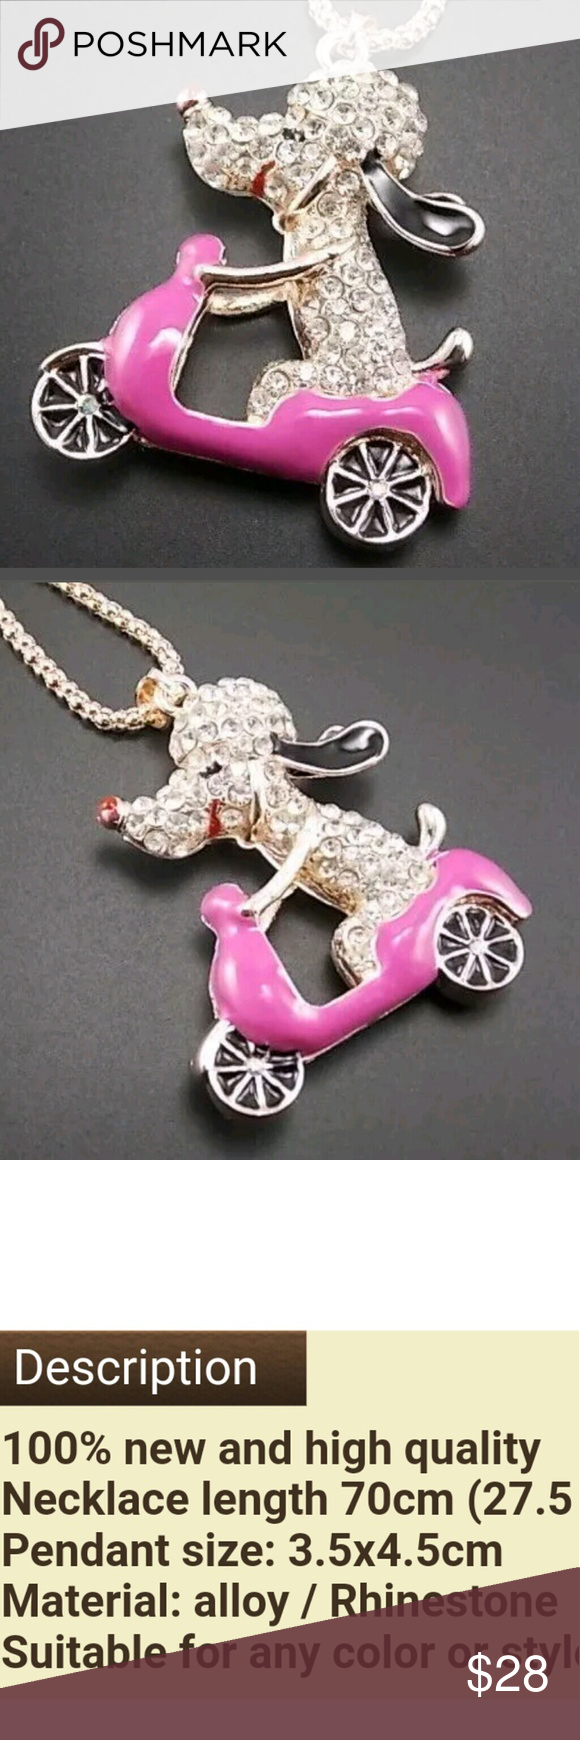 New Betsey Johnson poidle dog riding a purple car New Betsey Johnson ...